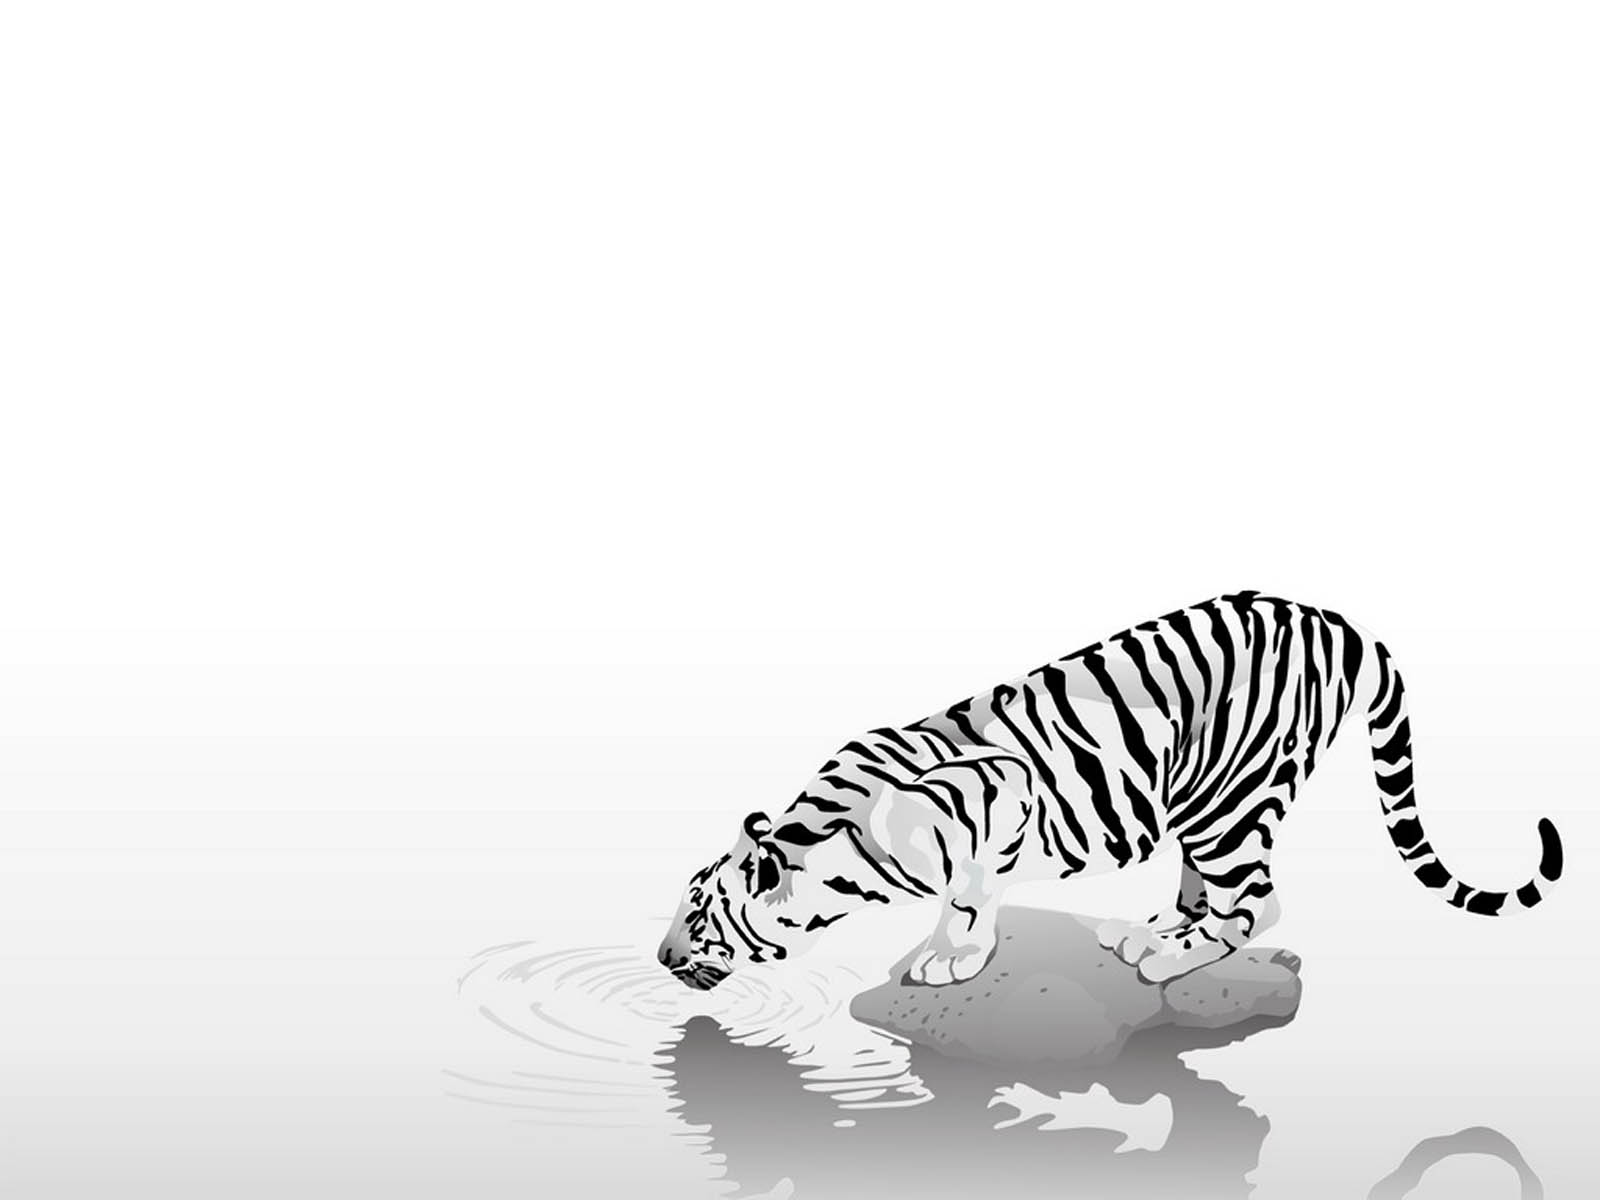 Wallpapers tiger 3d wallpapers you are watching the tiger 3d wallpapers tiger 3d desktop wallpapers tiger 3d desktop backgrounds images photos and pictures in the category of 3d voltagebd Images